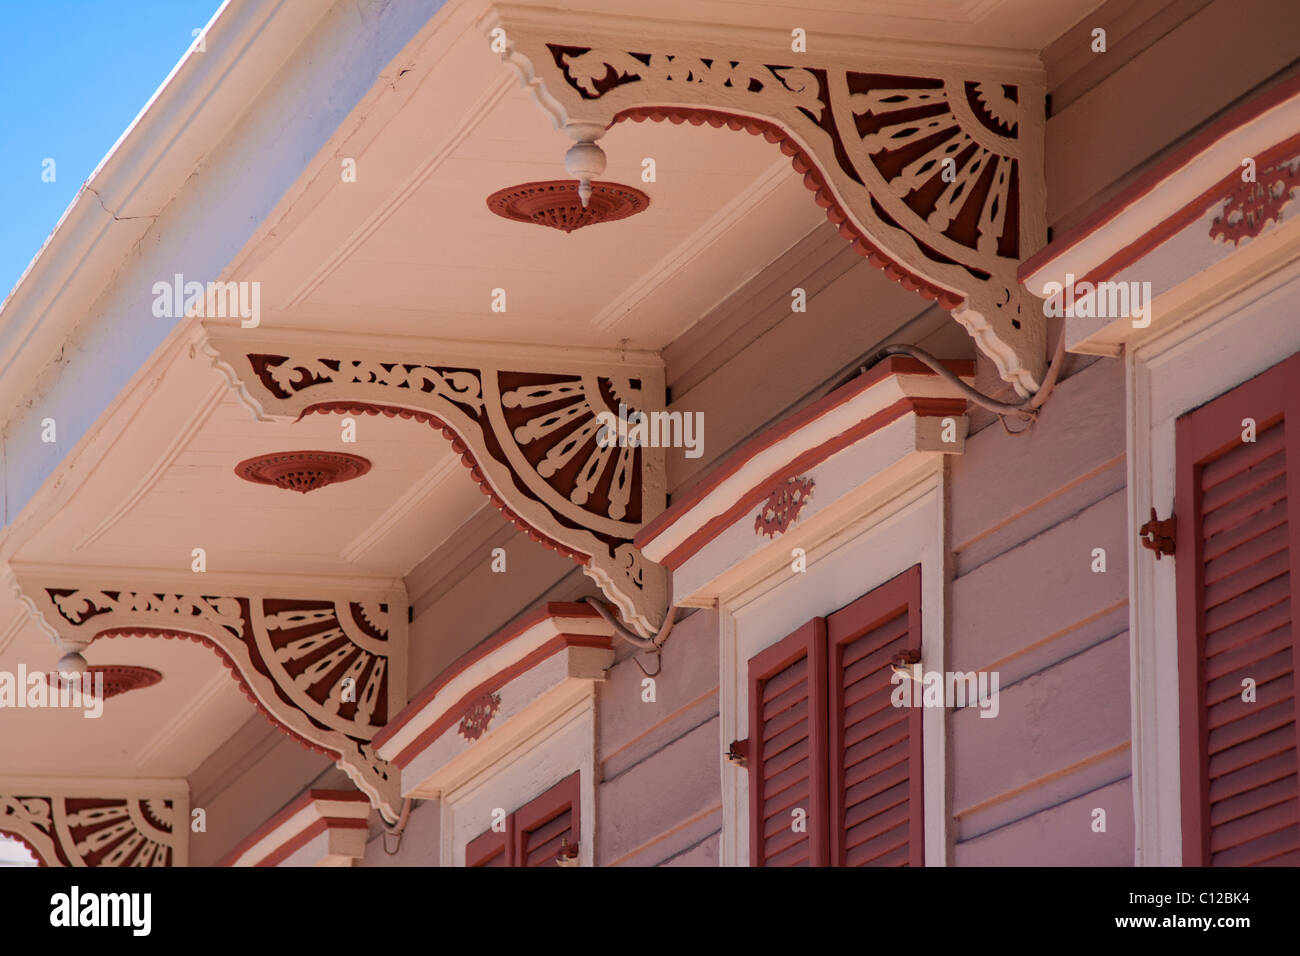 Closeup of decorative corbels on a Creole townhouse in the French Quarter of New Orleans, Louisiana - Stock Image